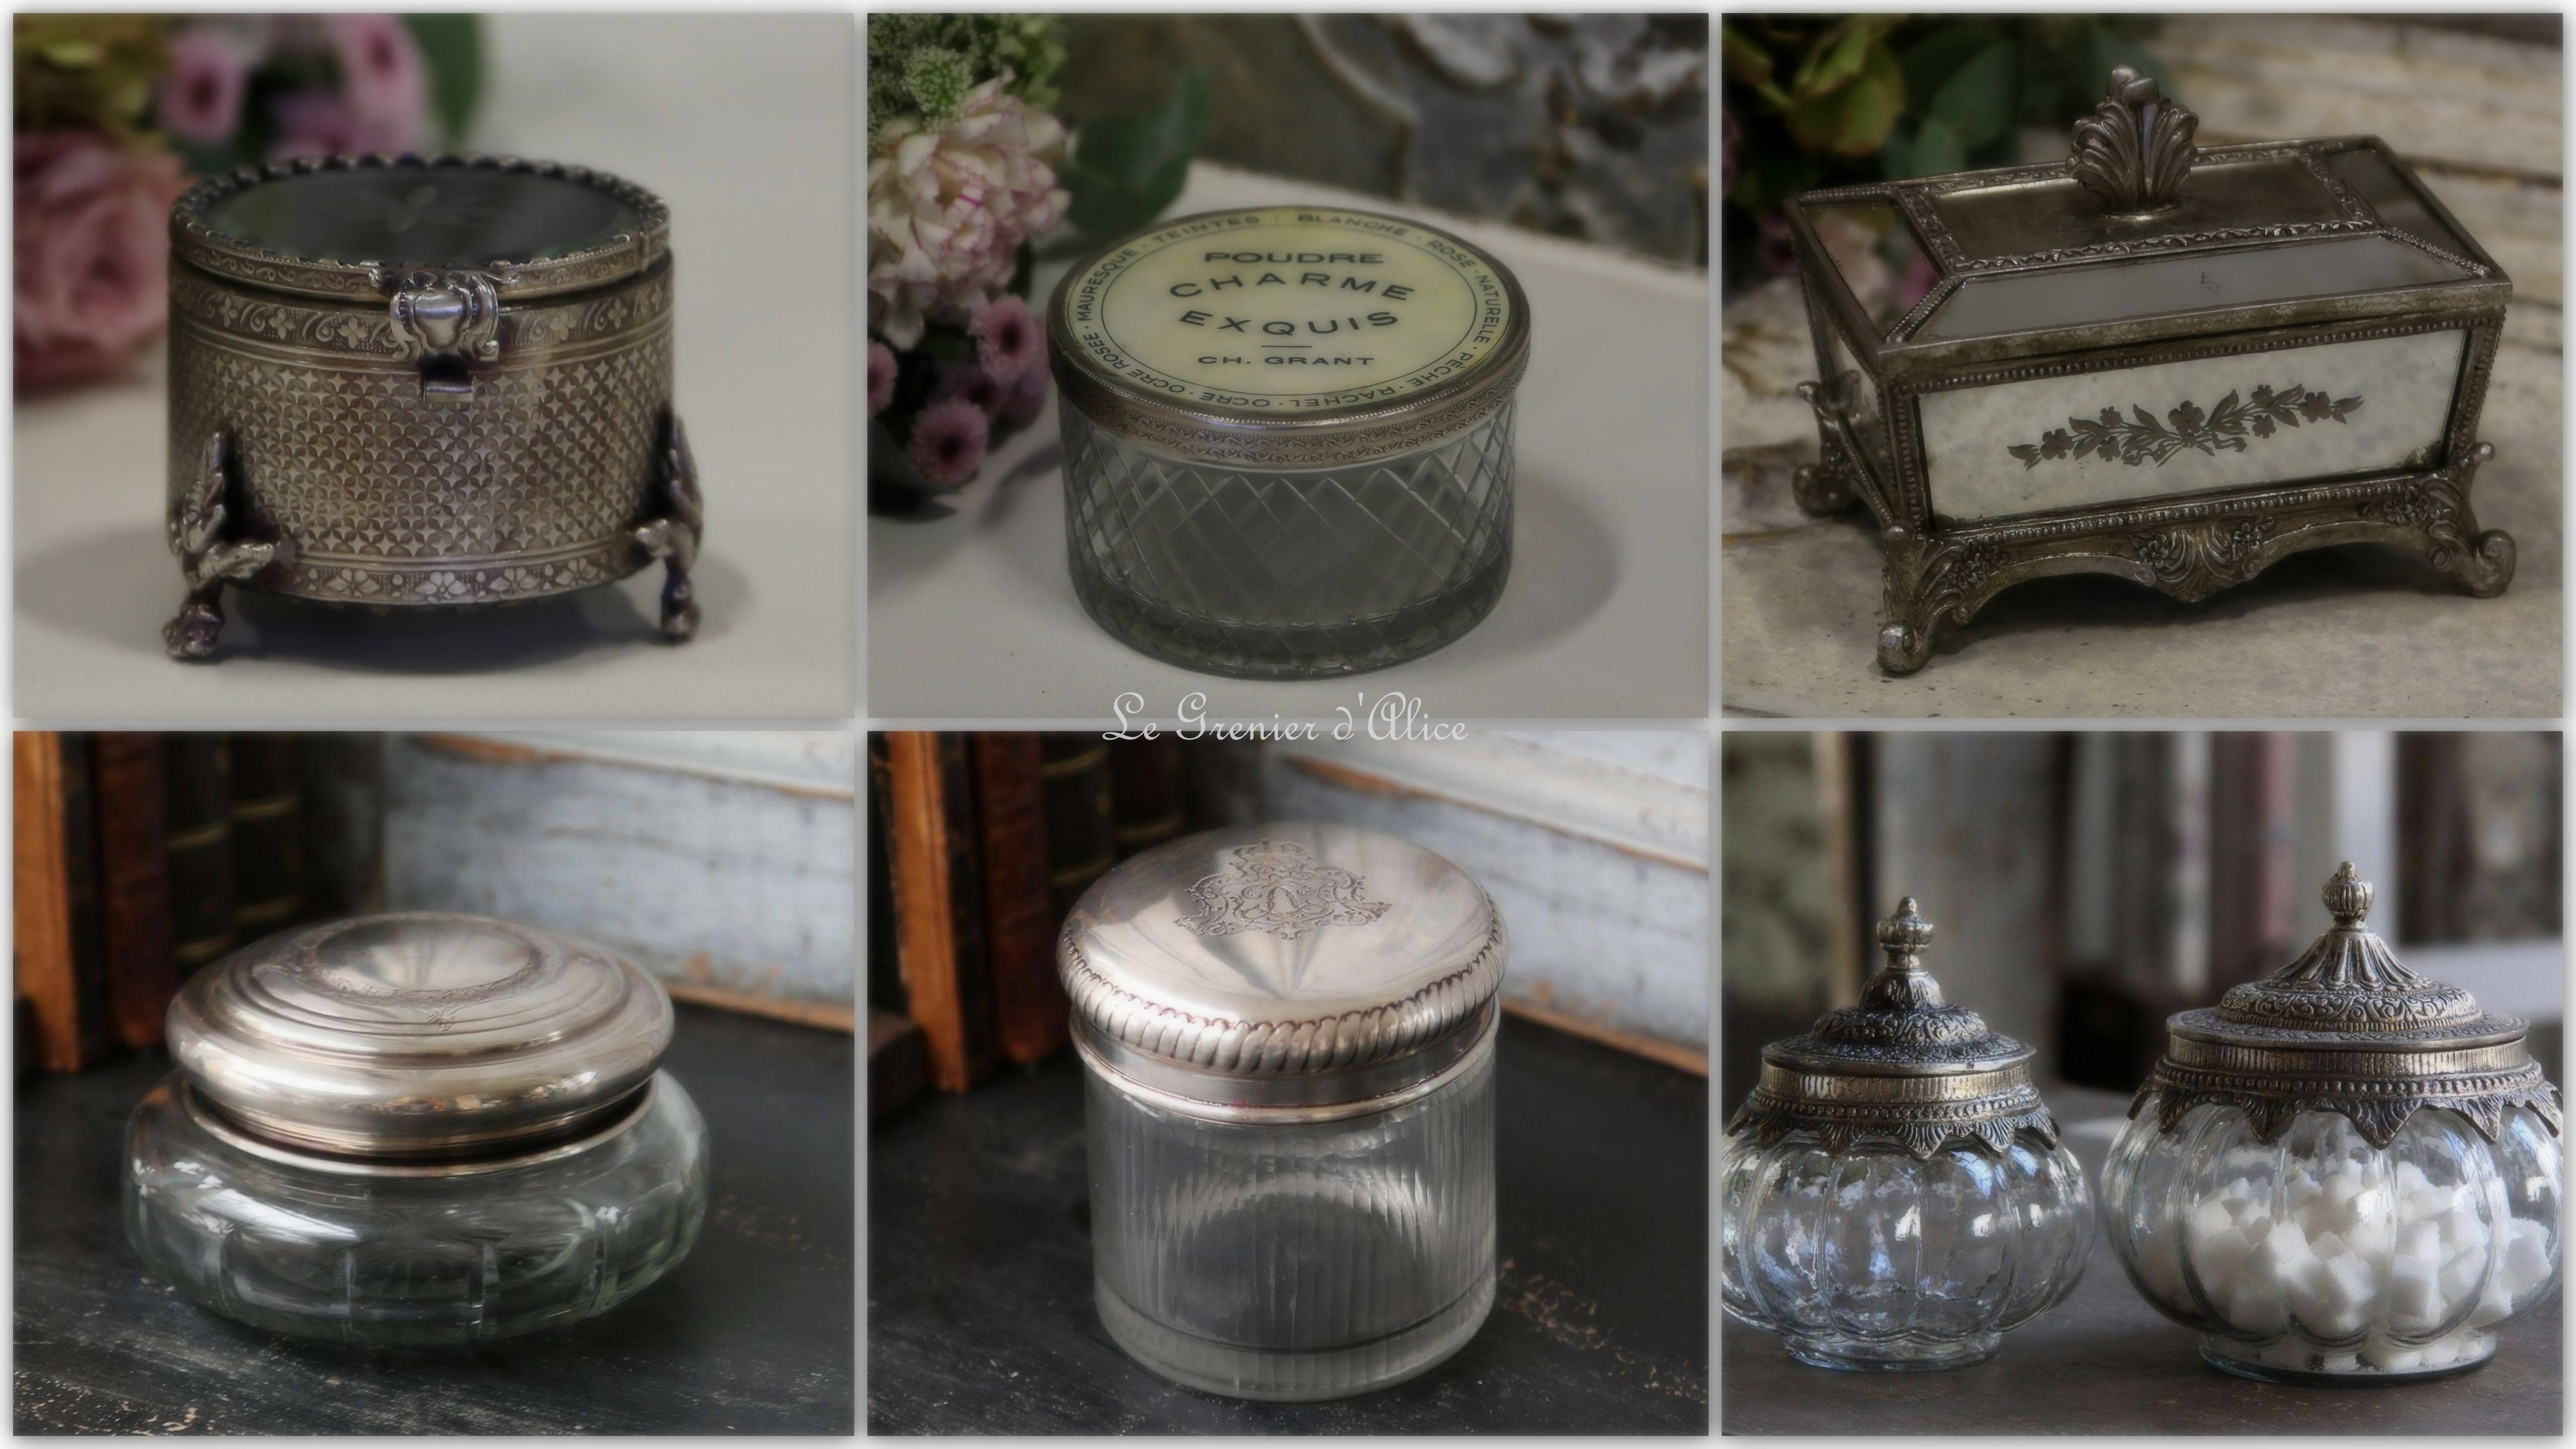 Collection boite à bijoux trésor pilule poudre en verrre et argent mercurisé de style ancien antique boite shabby chic romantique romantic and shabby silver glass silver box